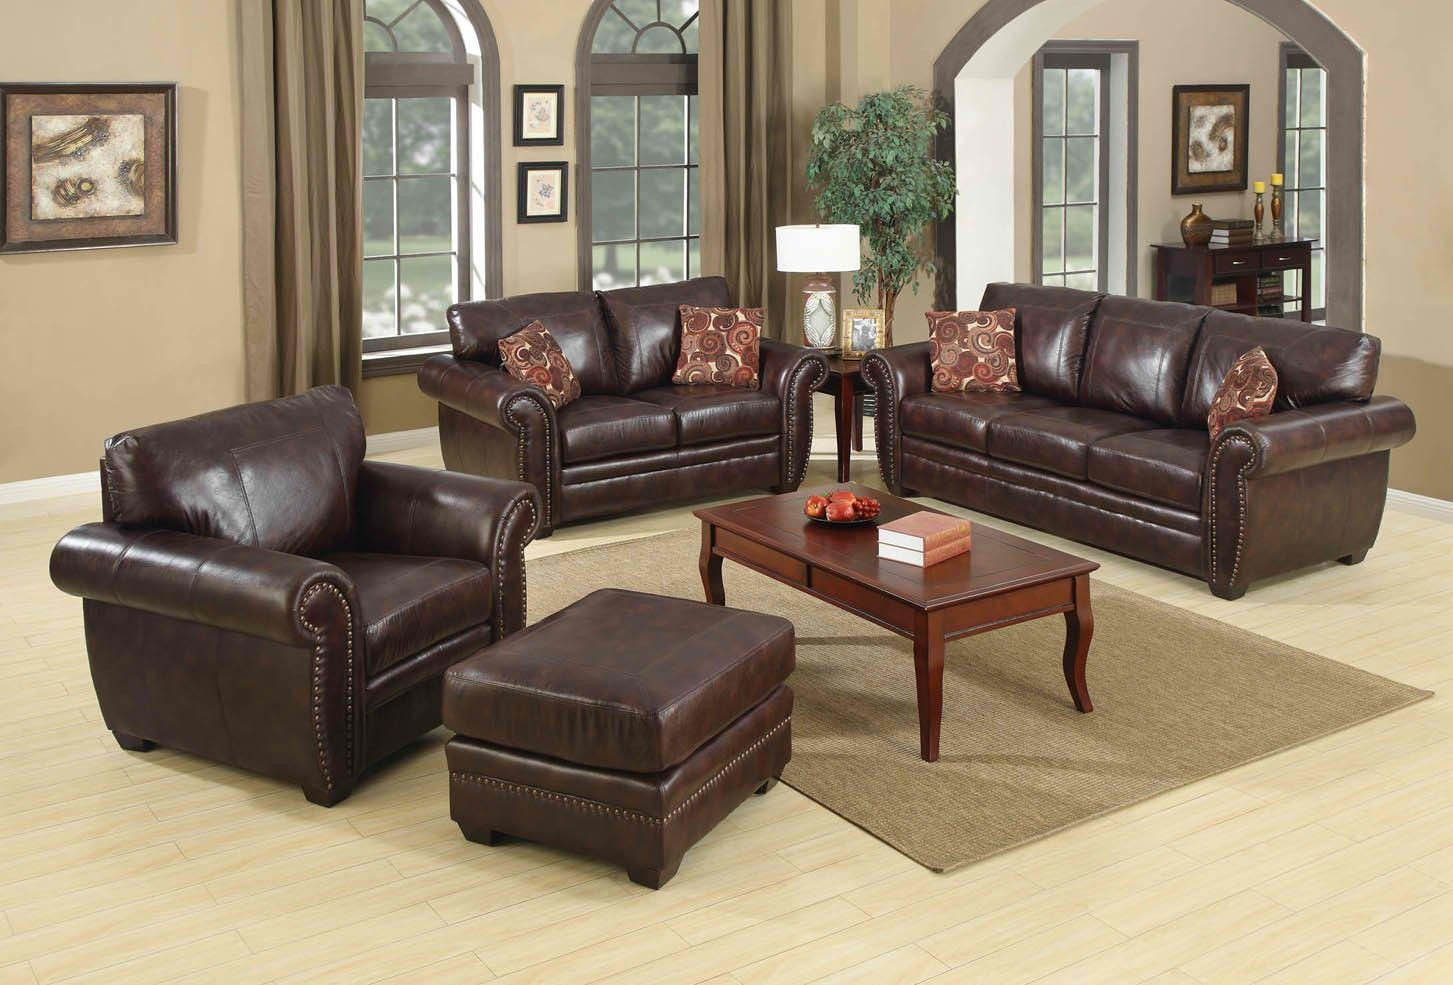 Living Room Ideas With Brown Leather